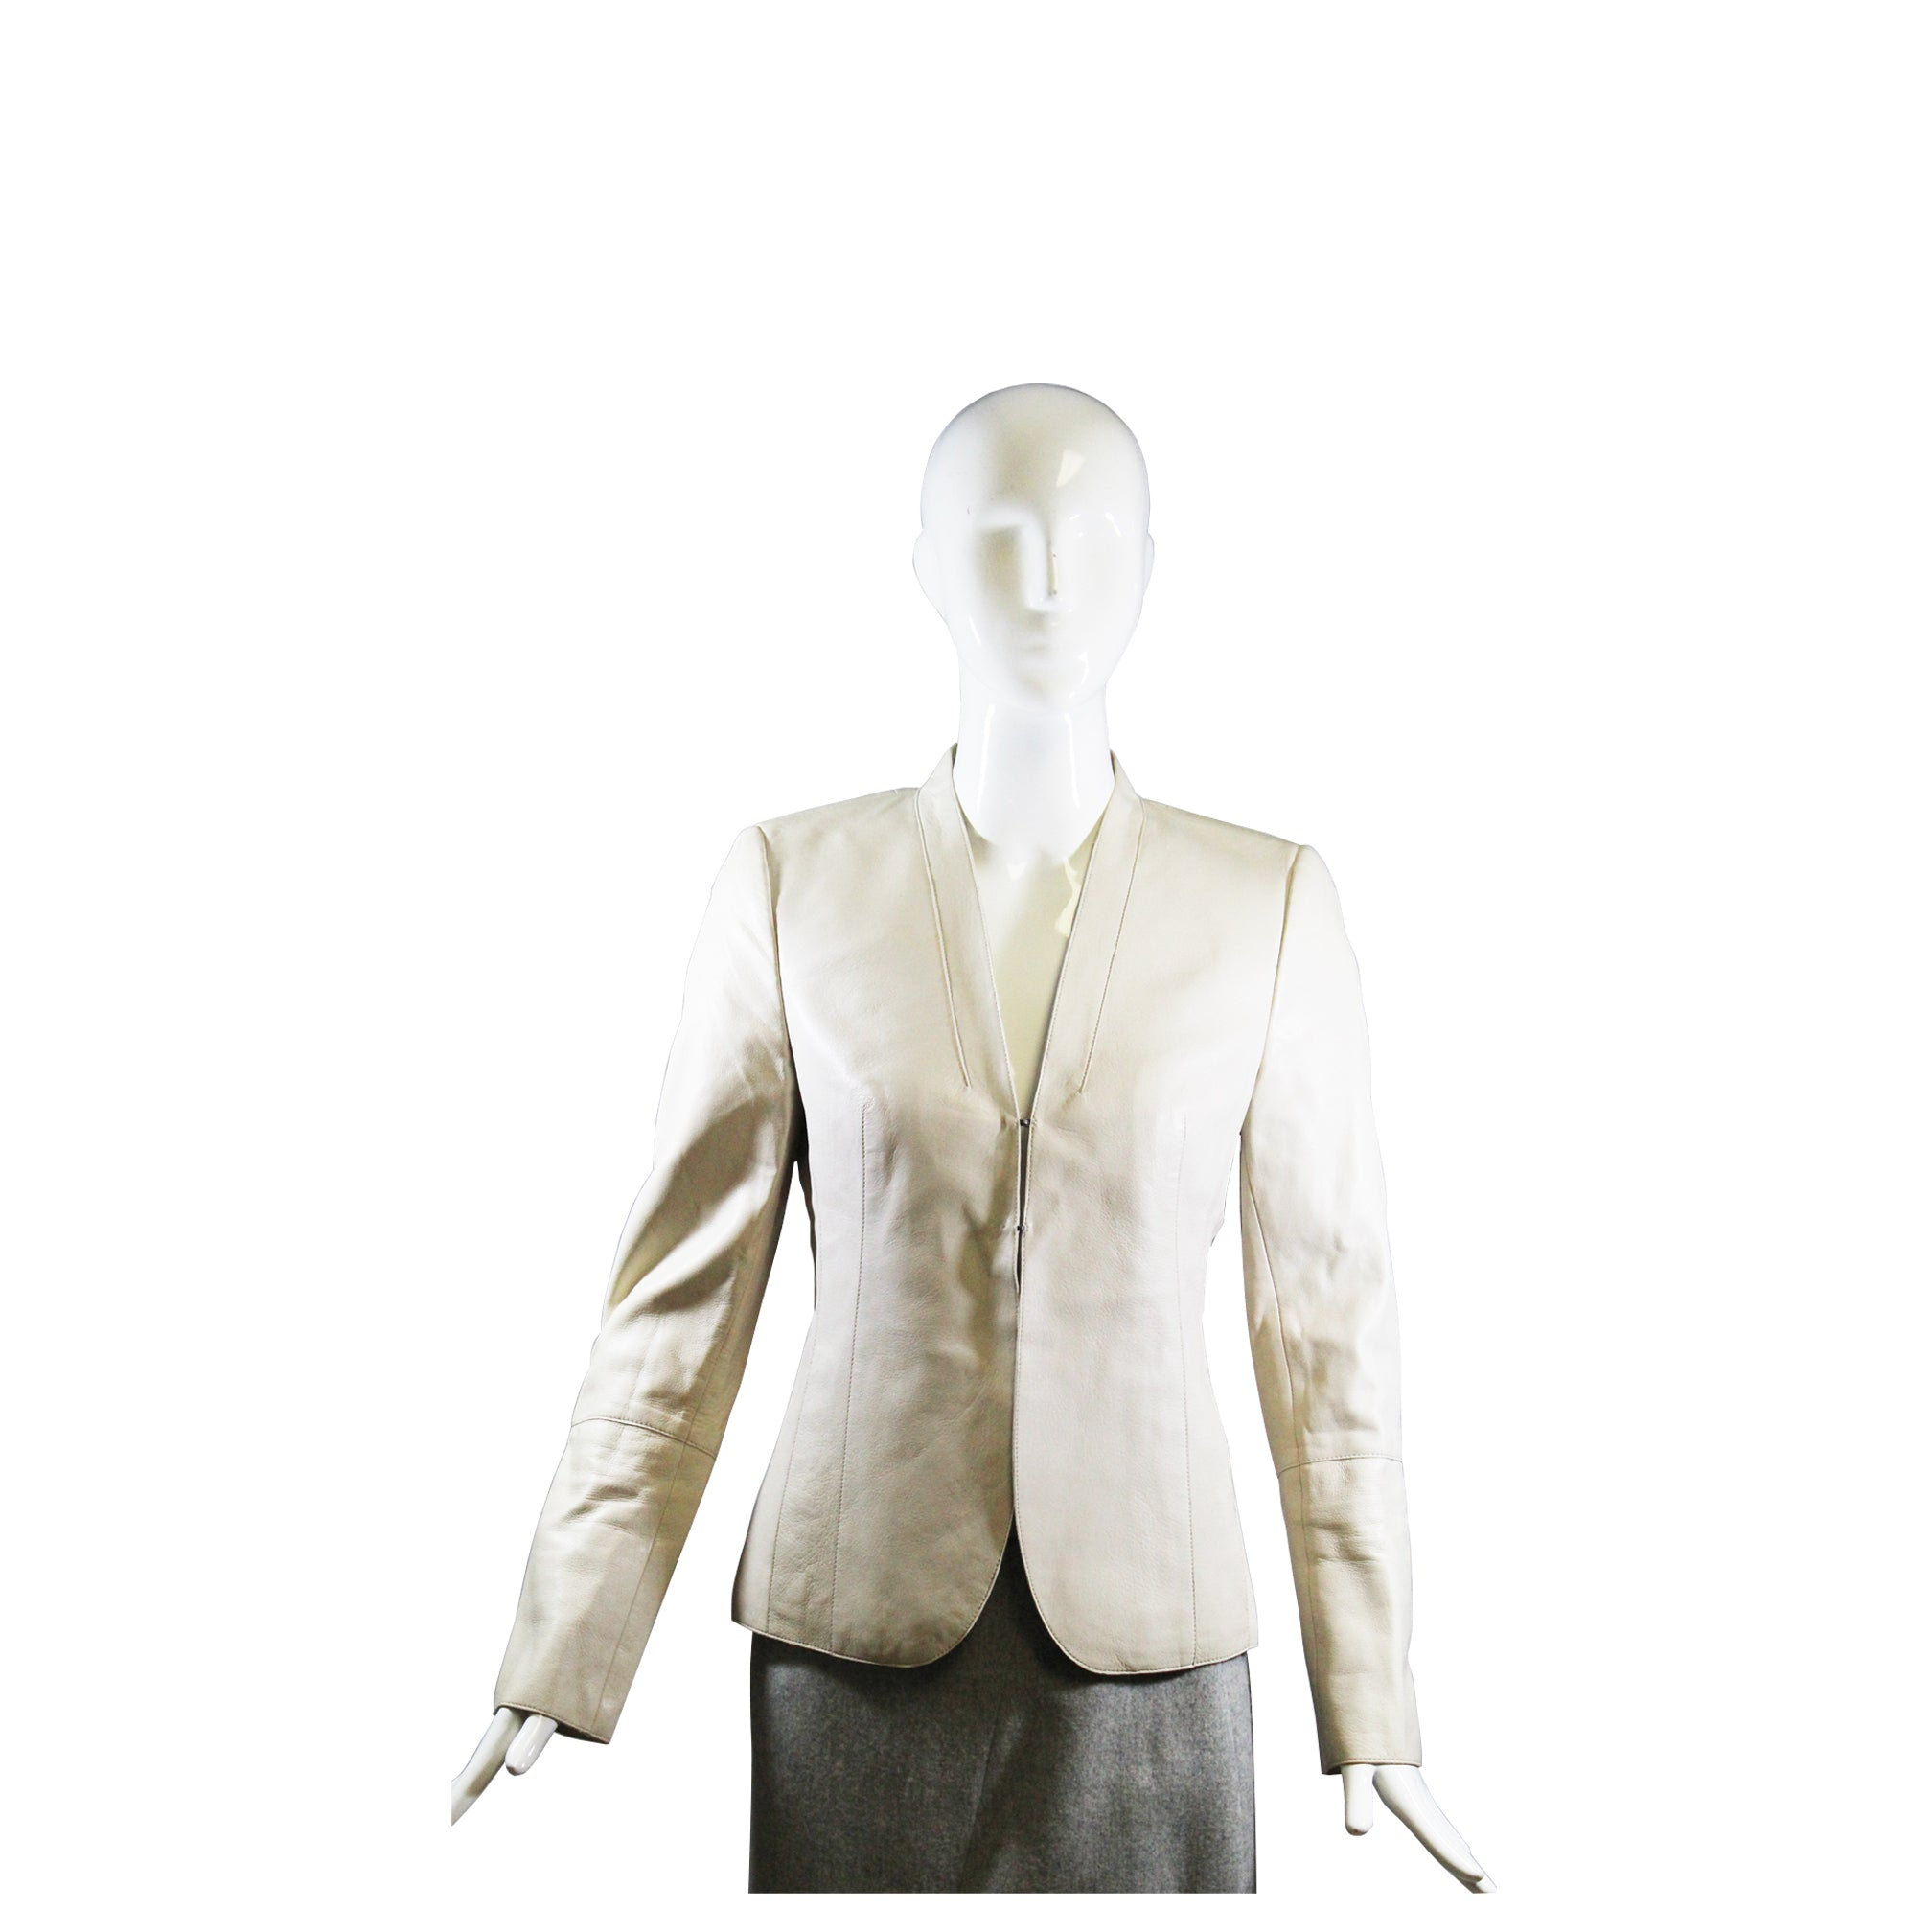 AKRIS Ivory Creme Ecru Beige Lamb Leather V Neck Hook/Eye Blazer Jacket F38 US 6